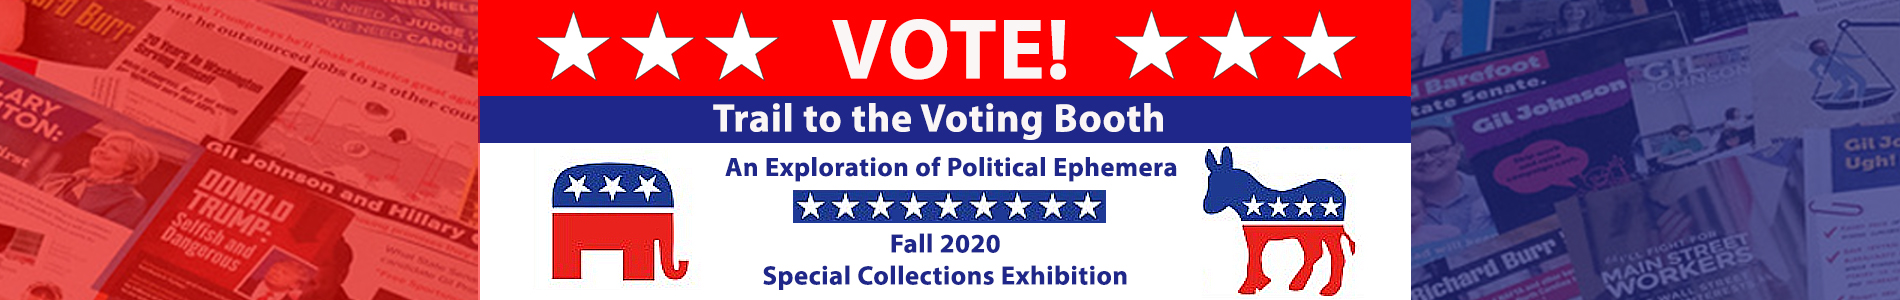 Banner Image for Trail to the Voting Booth